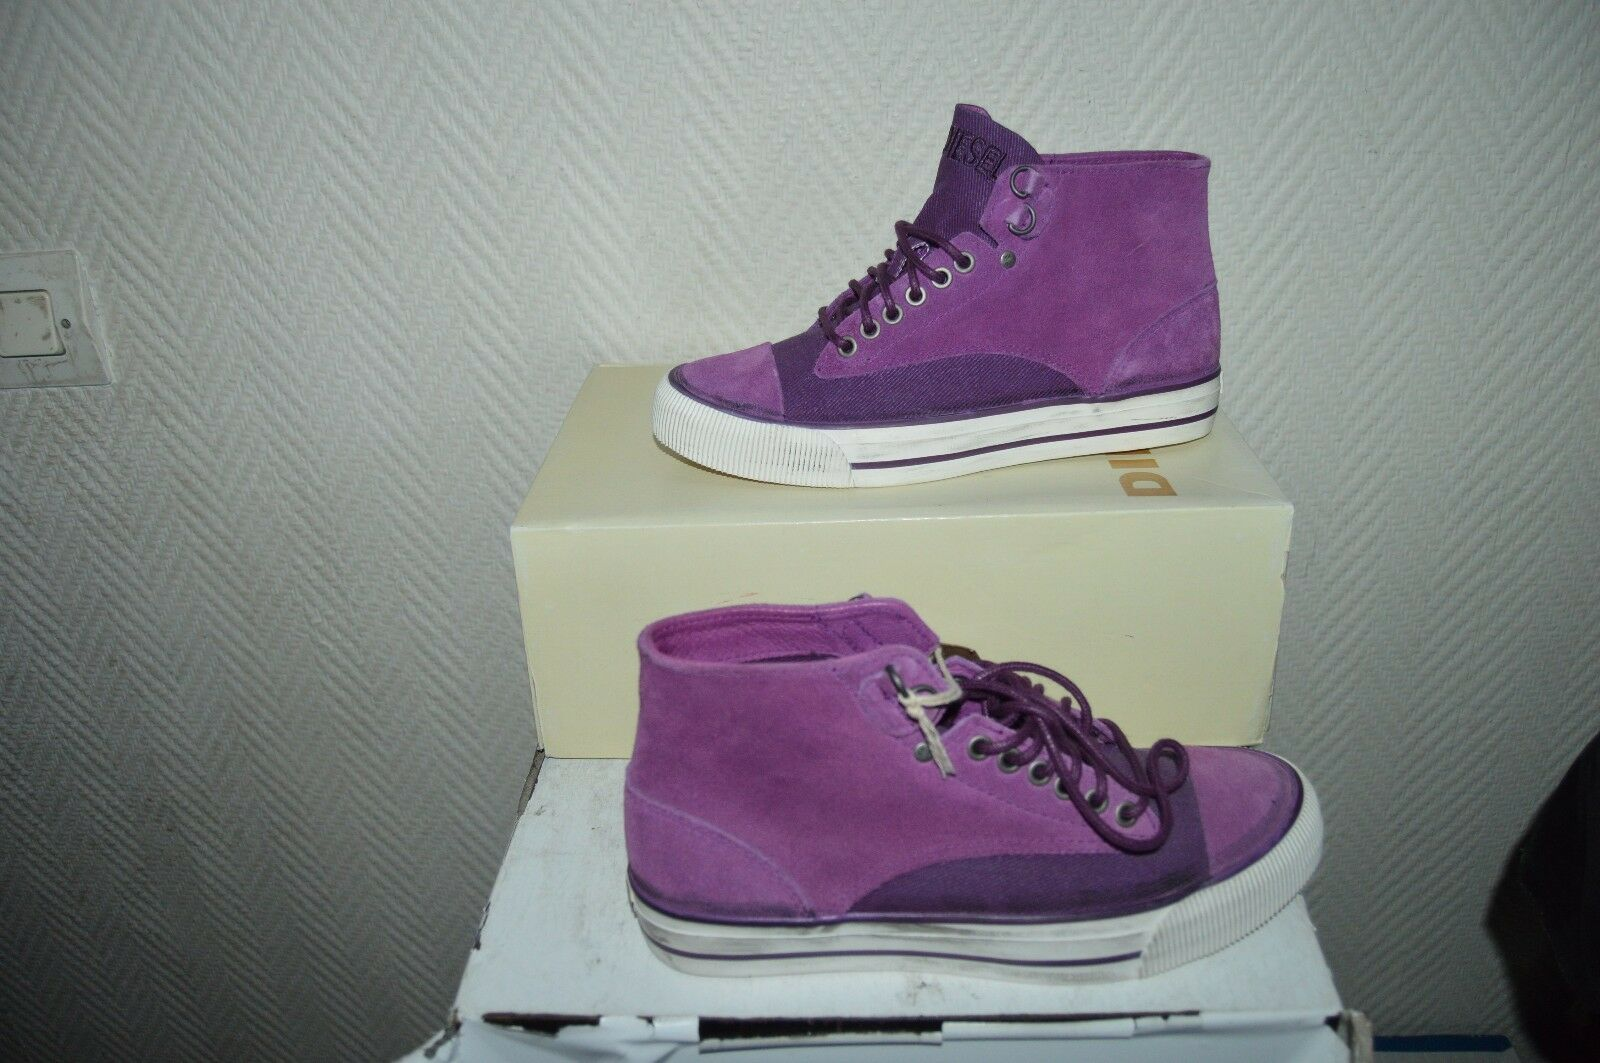 CHAUSSURE BASKET DIESEL CUIR CUIR CUIR TAILLE 41  NEUF SNEAKERS/SHOES/ZAPATOS/STIVALI b4a126